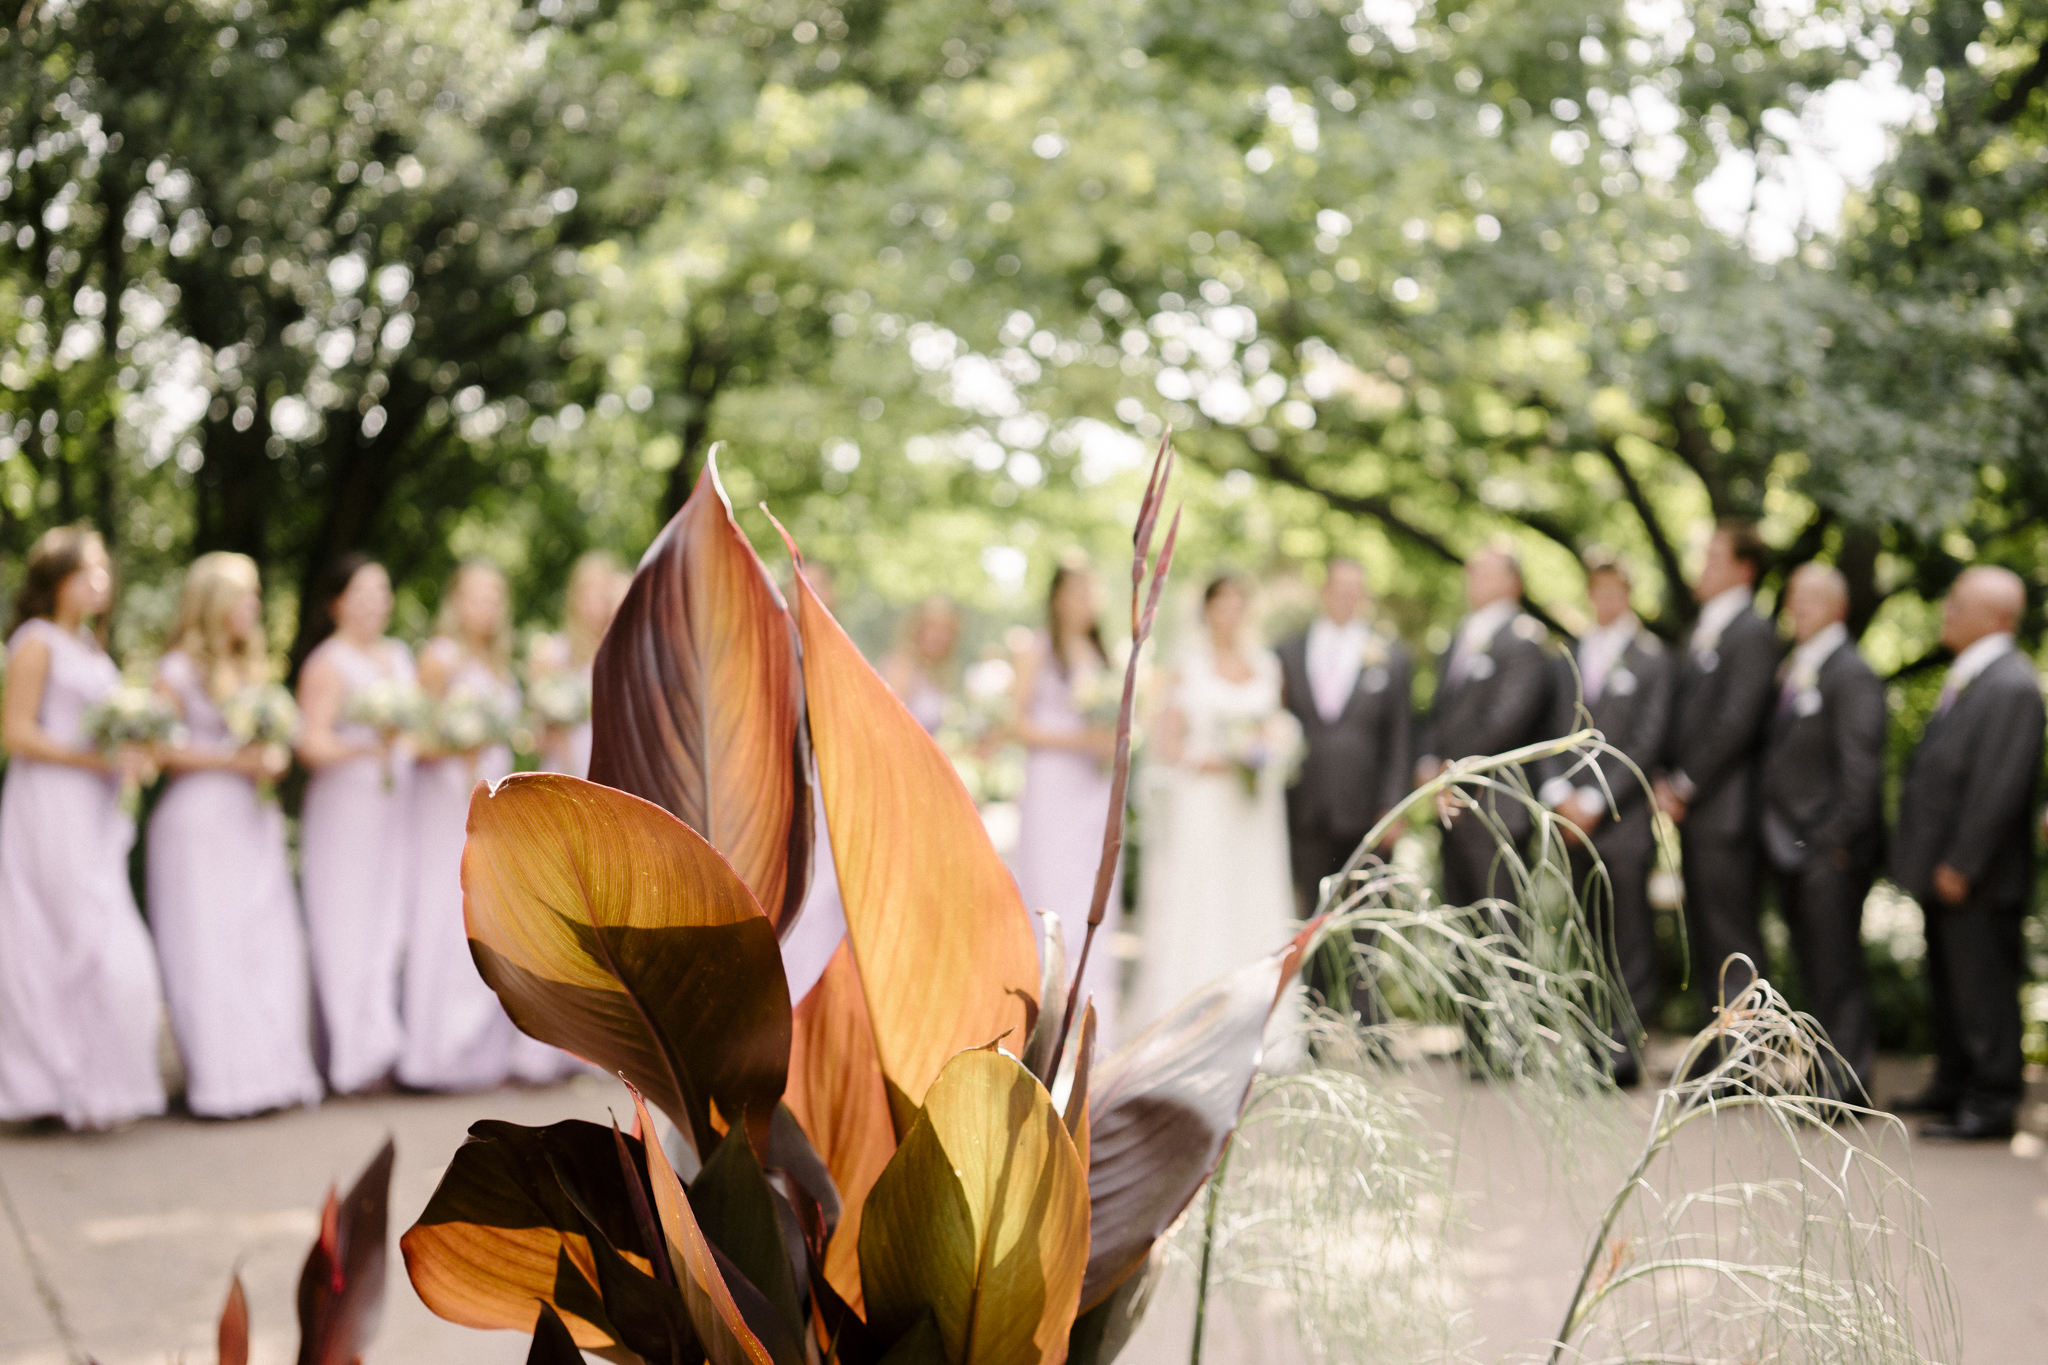 denver-botanical-garden-wedding-handcrafted_tj-romero_wedding-photographer-14.jpg